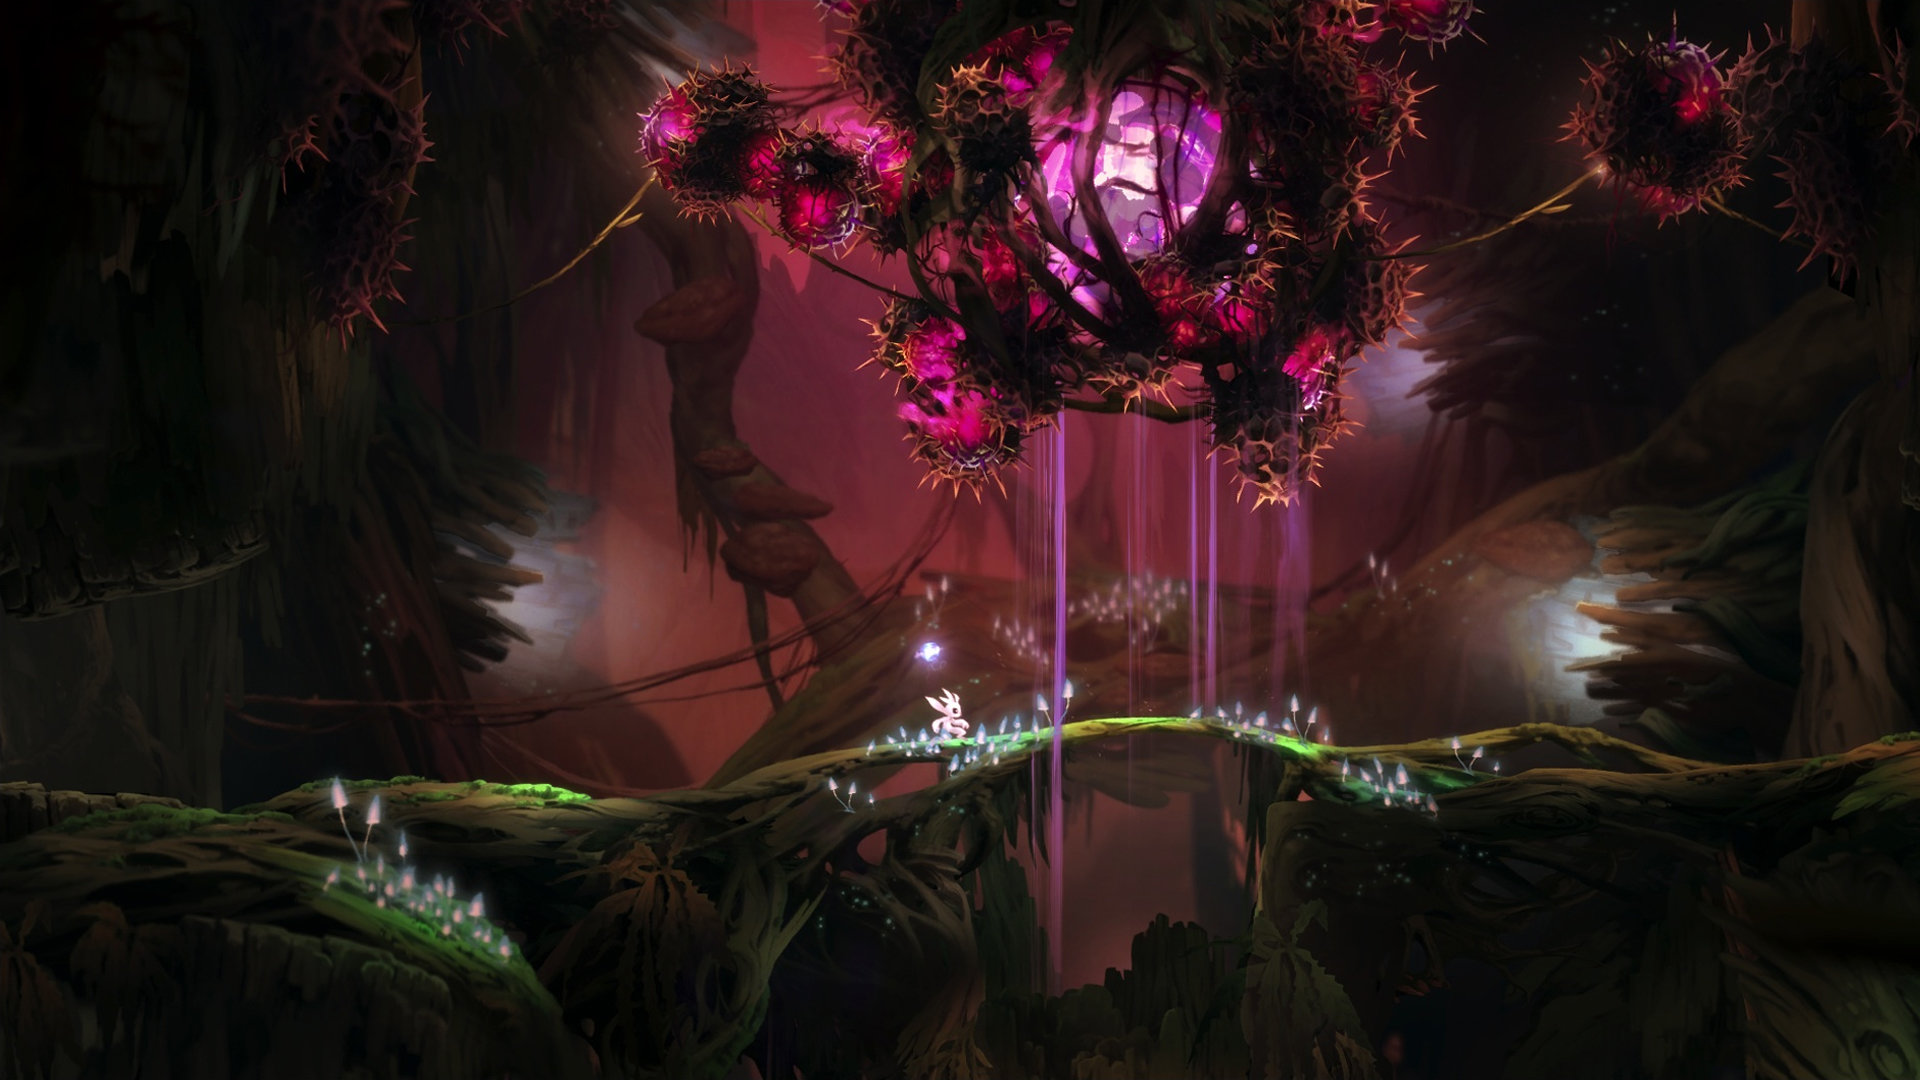 Ori And The Blind Forest Hd Wallpaper: Ori And The Blind Forest Wallpapers 1920x1080 Full HD